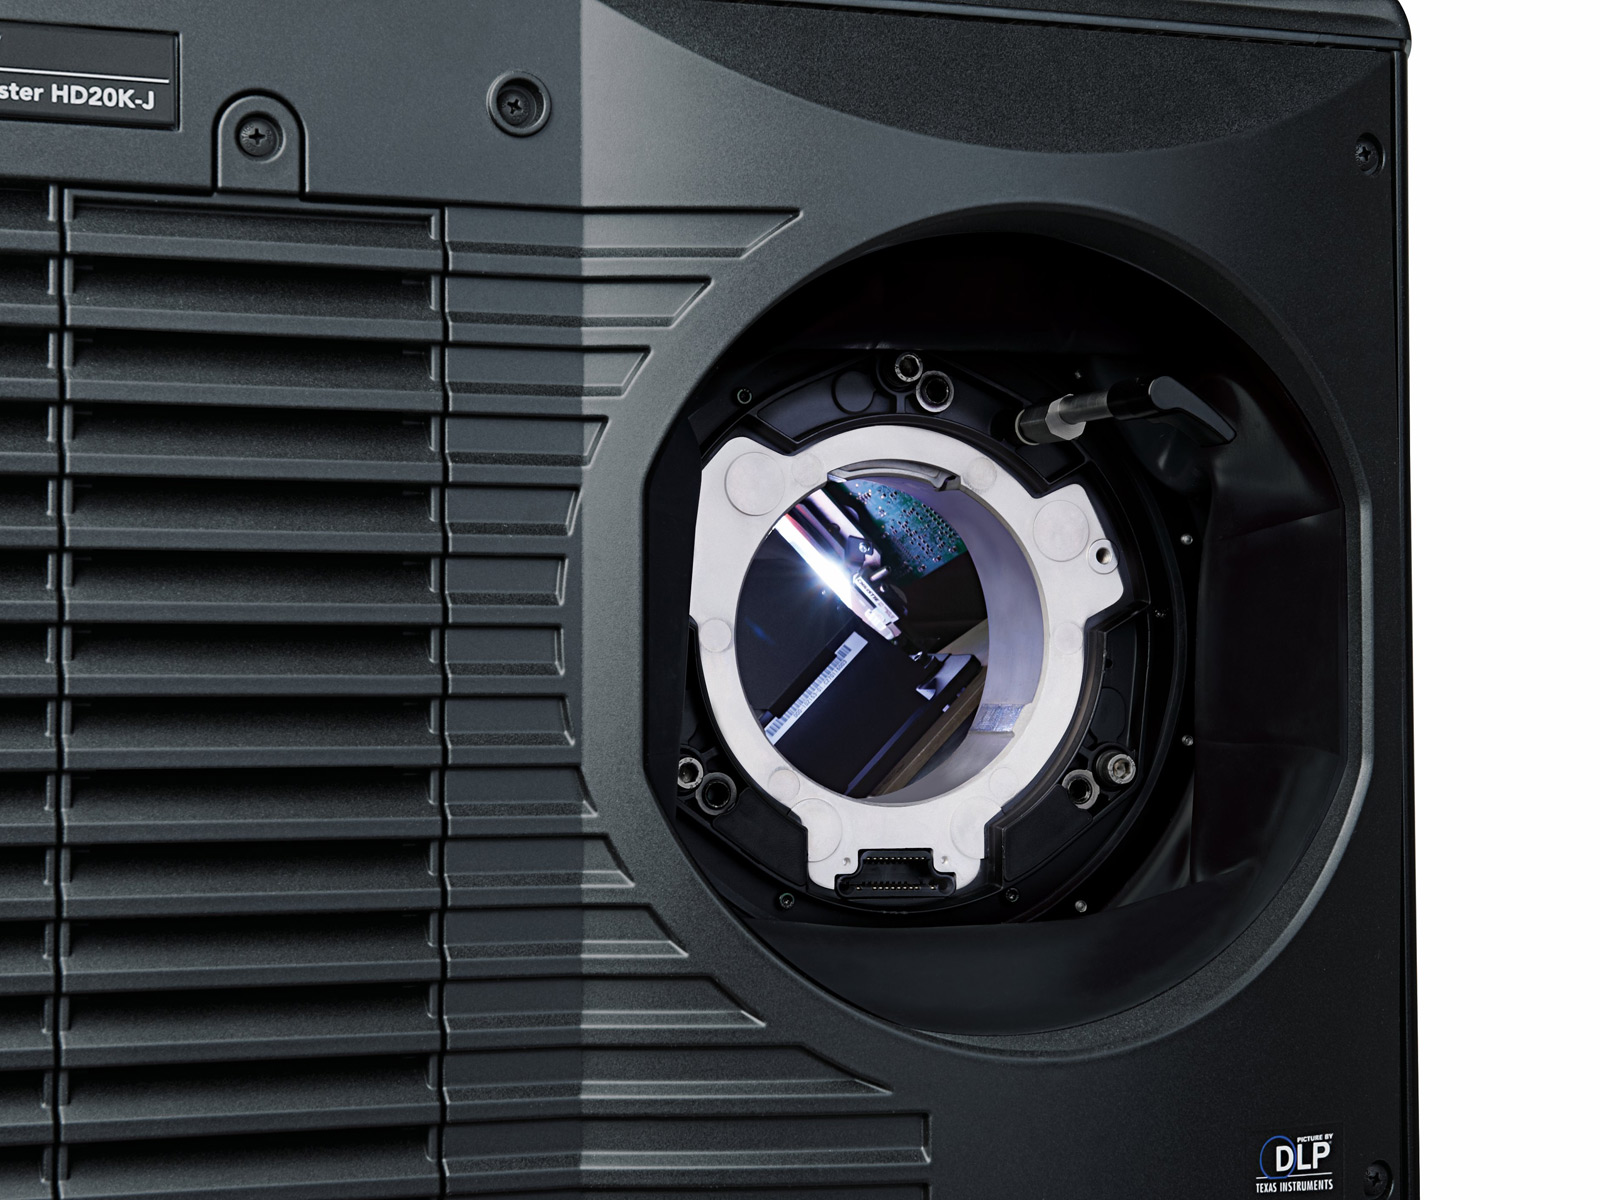 /globalassets/.catalog/products/images/roadster-s22k-j/gallery/roadster-hd14k-j-3-chip-dlp-projector-11.jpg